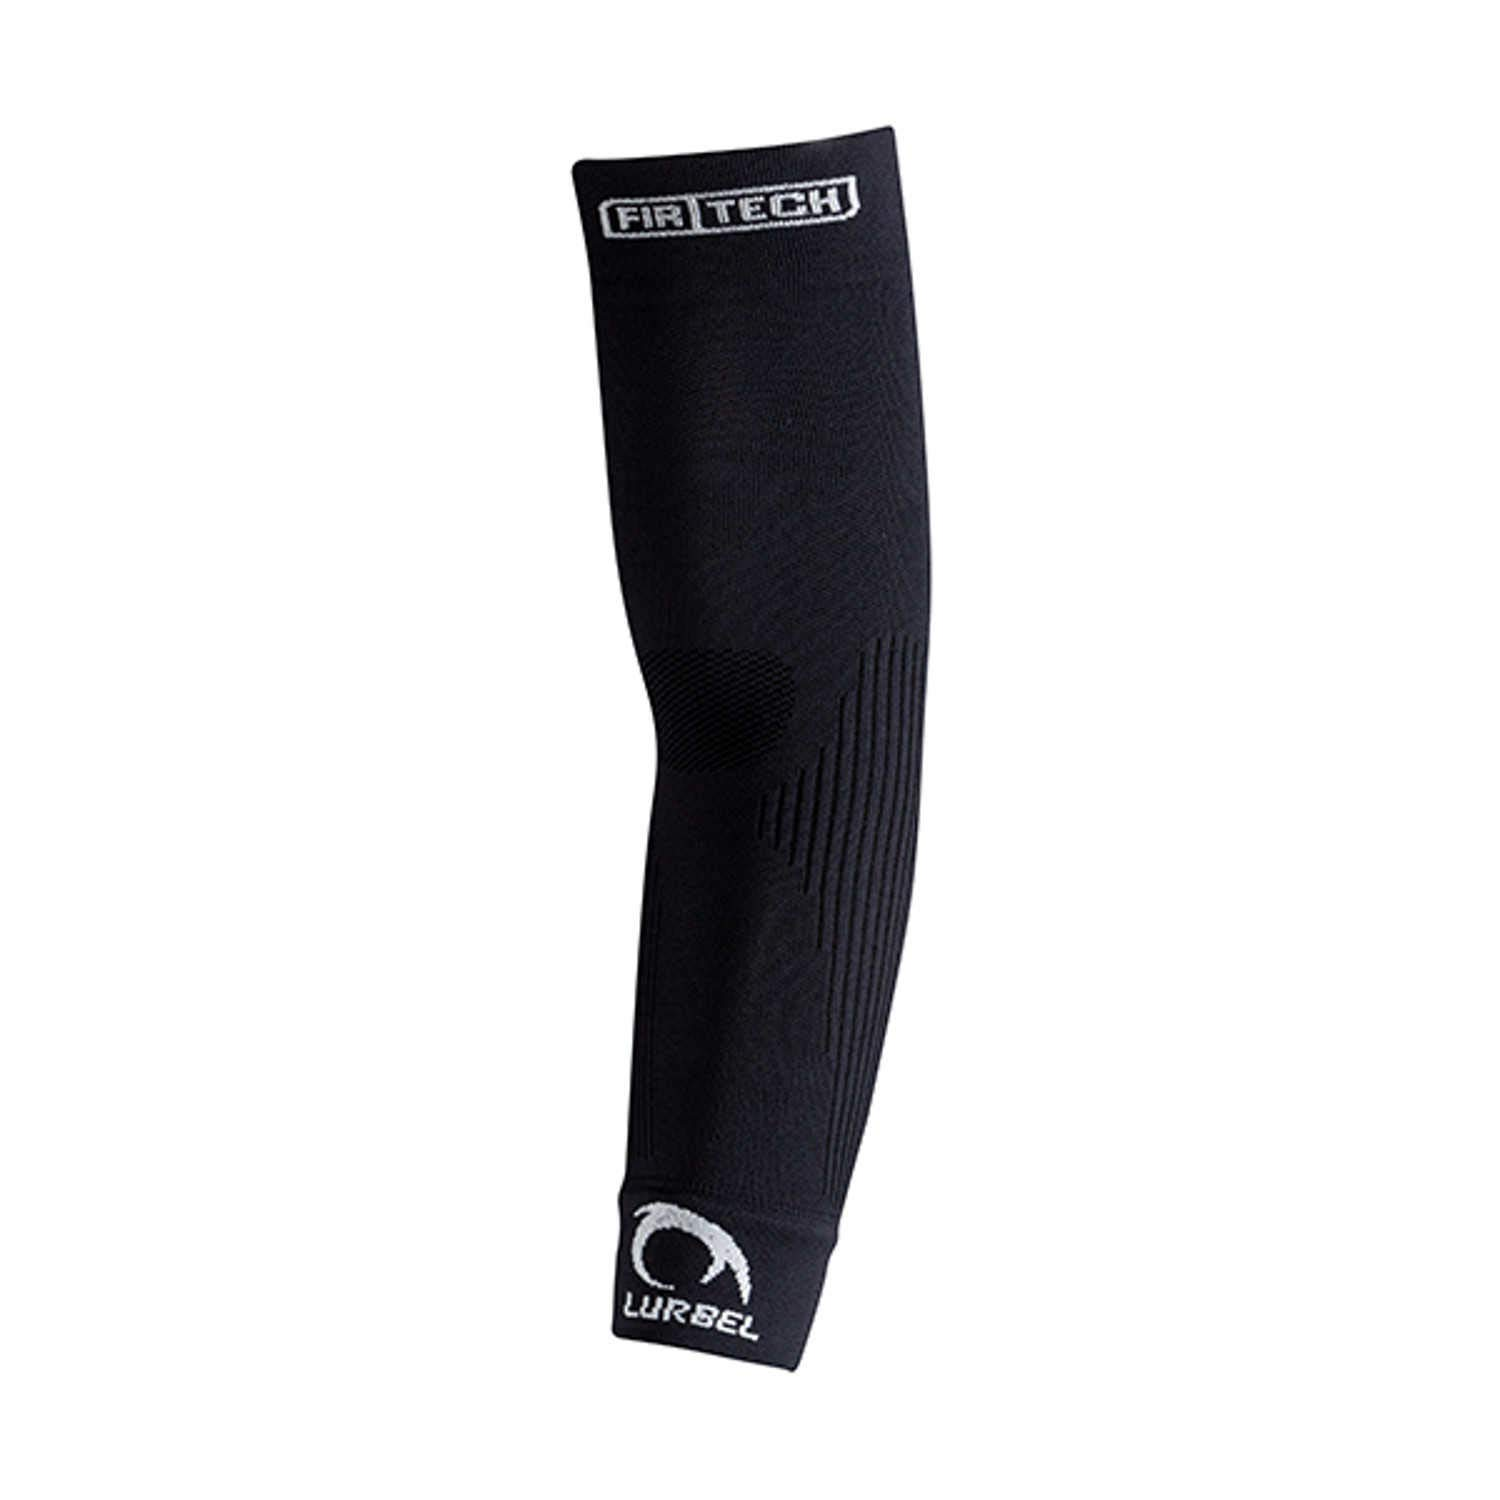 Lurbel - Arm Sleeves Rally, Color Negro, Talla 631 RALLY 00